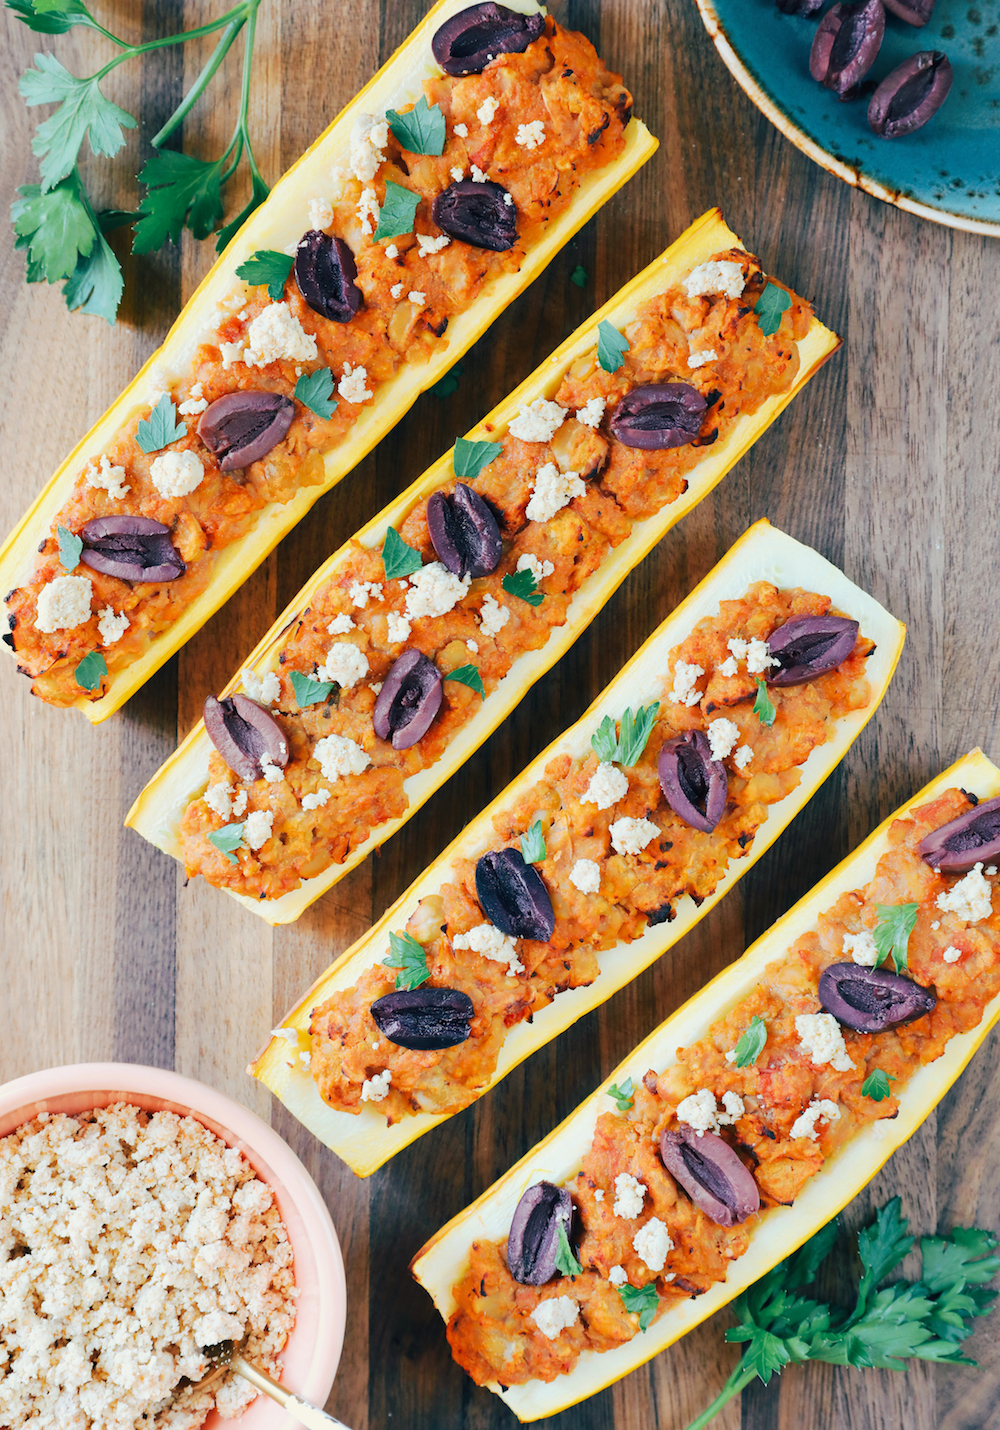 Mediterranean Squash Boats With Smashed Chickpeas & Almond Cheese Crumbles